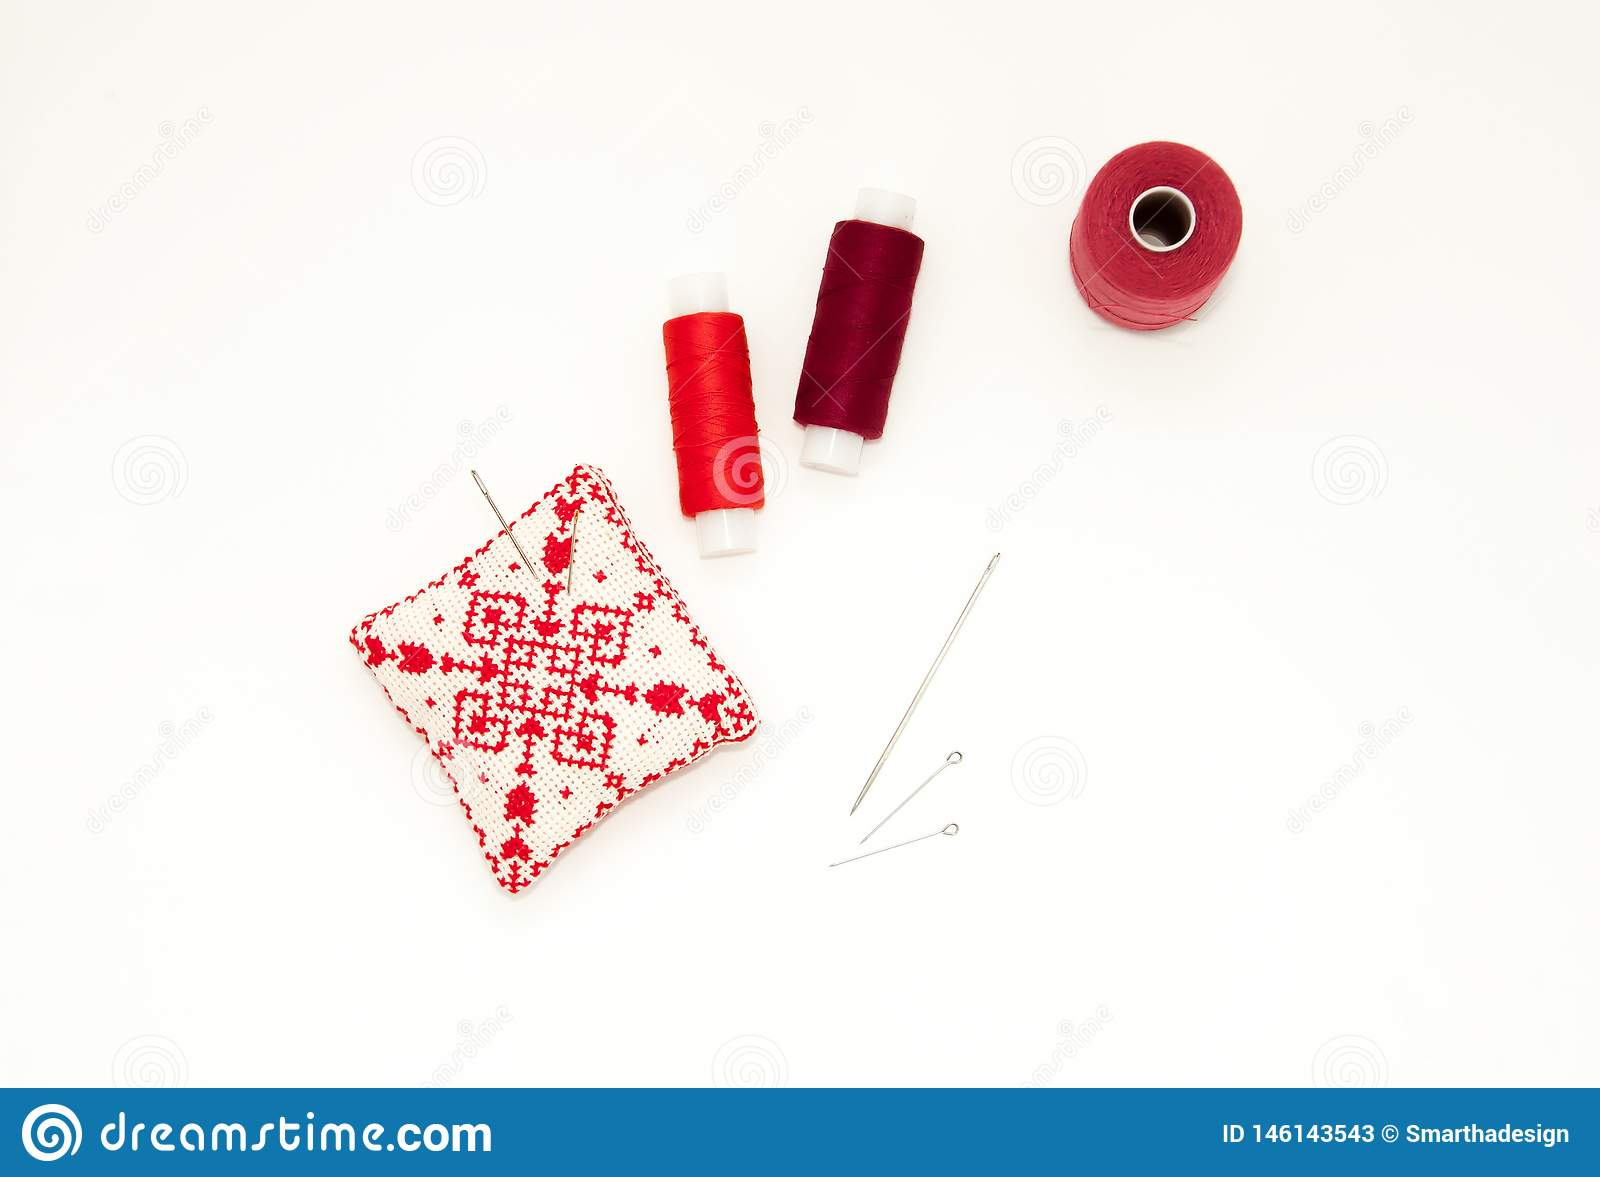 Flat lay with handmade red embroidered needle pad, thread spools, pins, needles, mock up, top view. Layout mockup on blank white